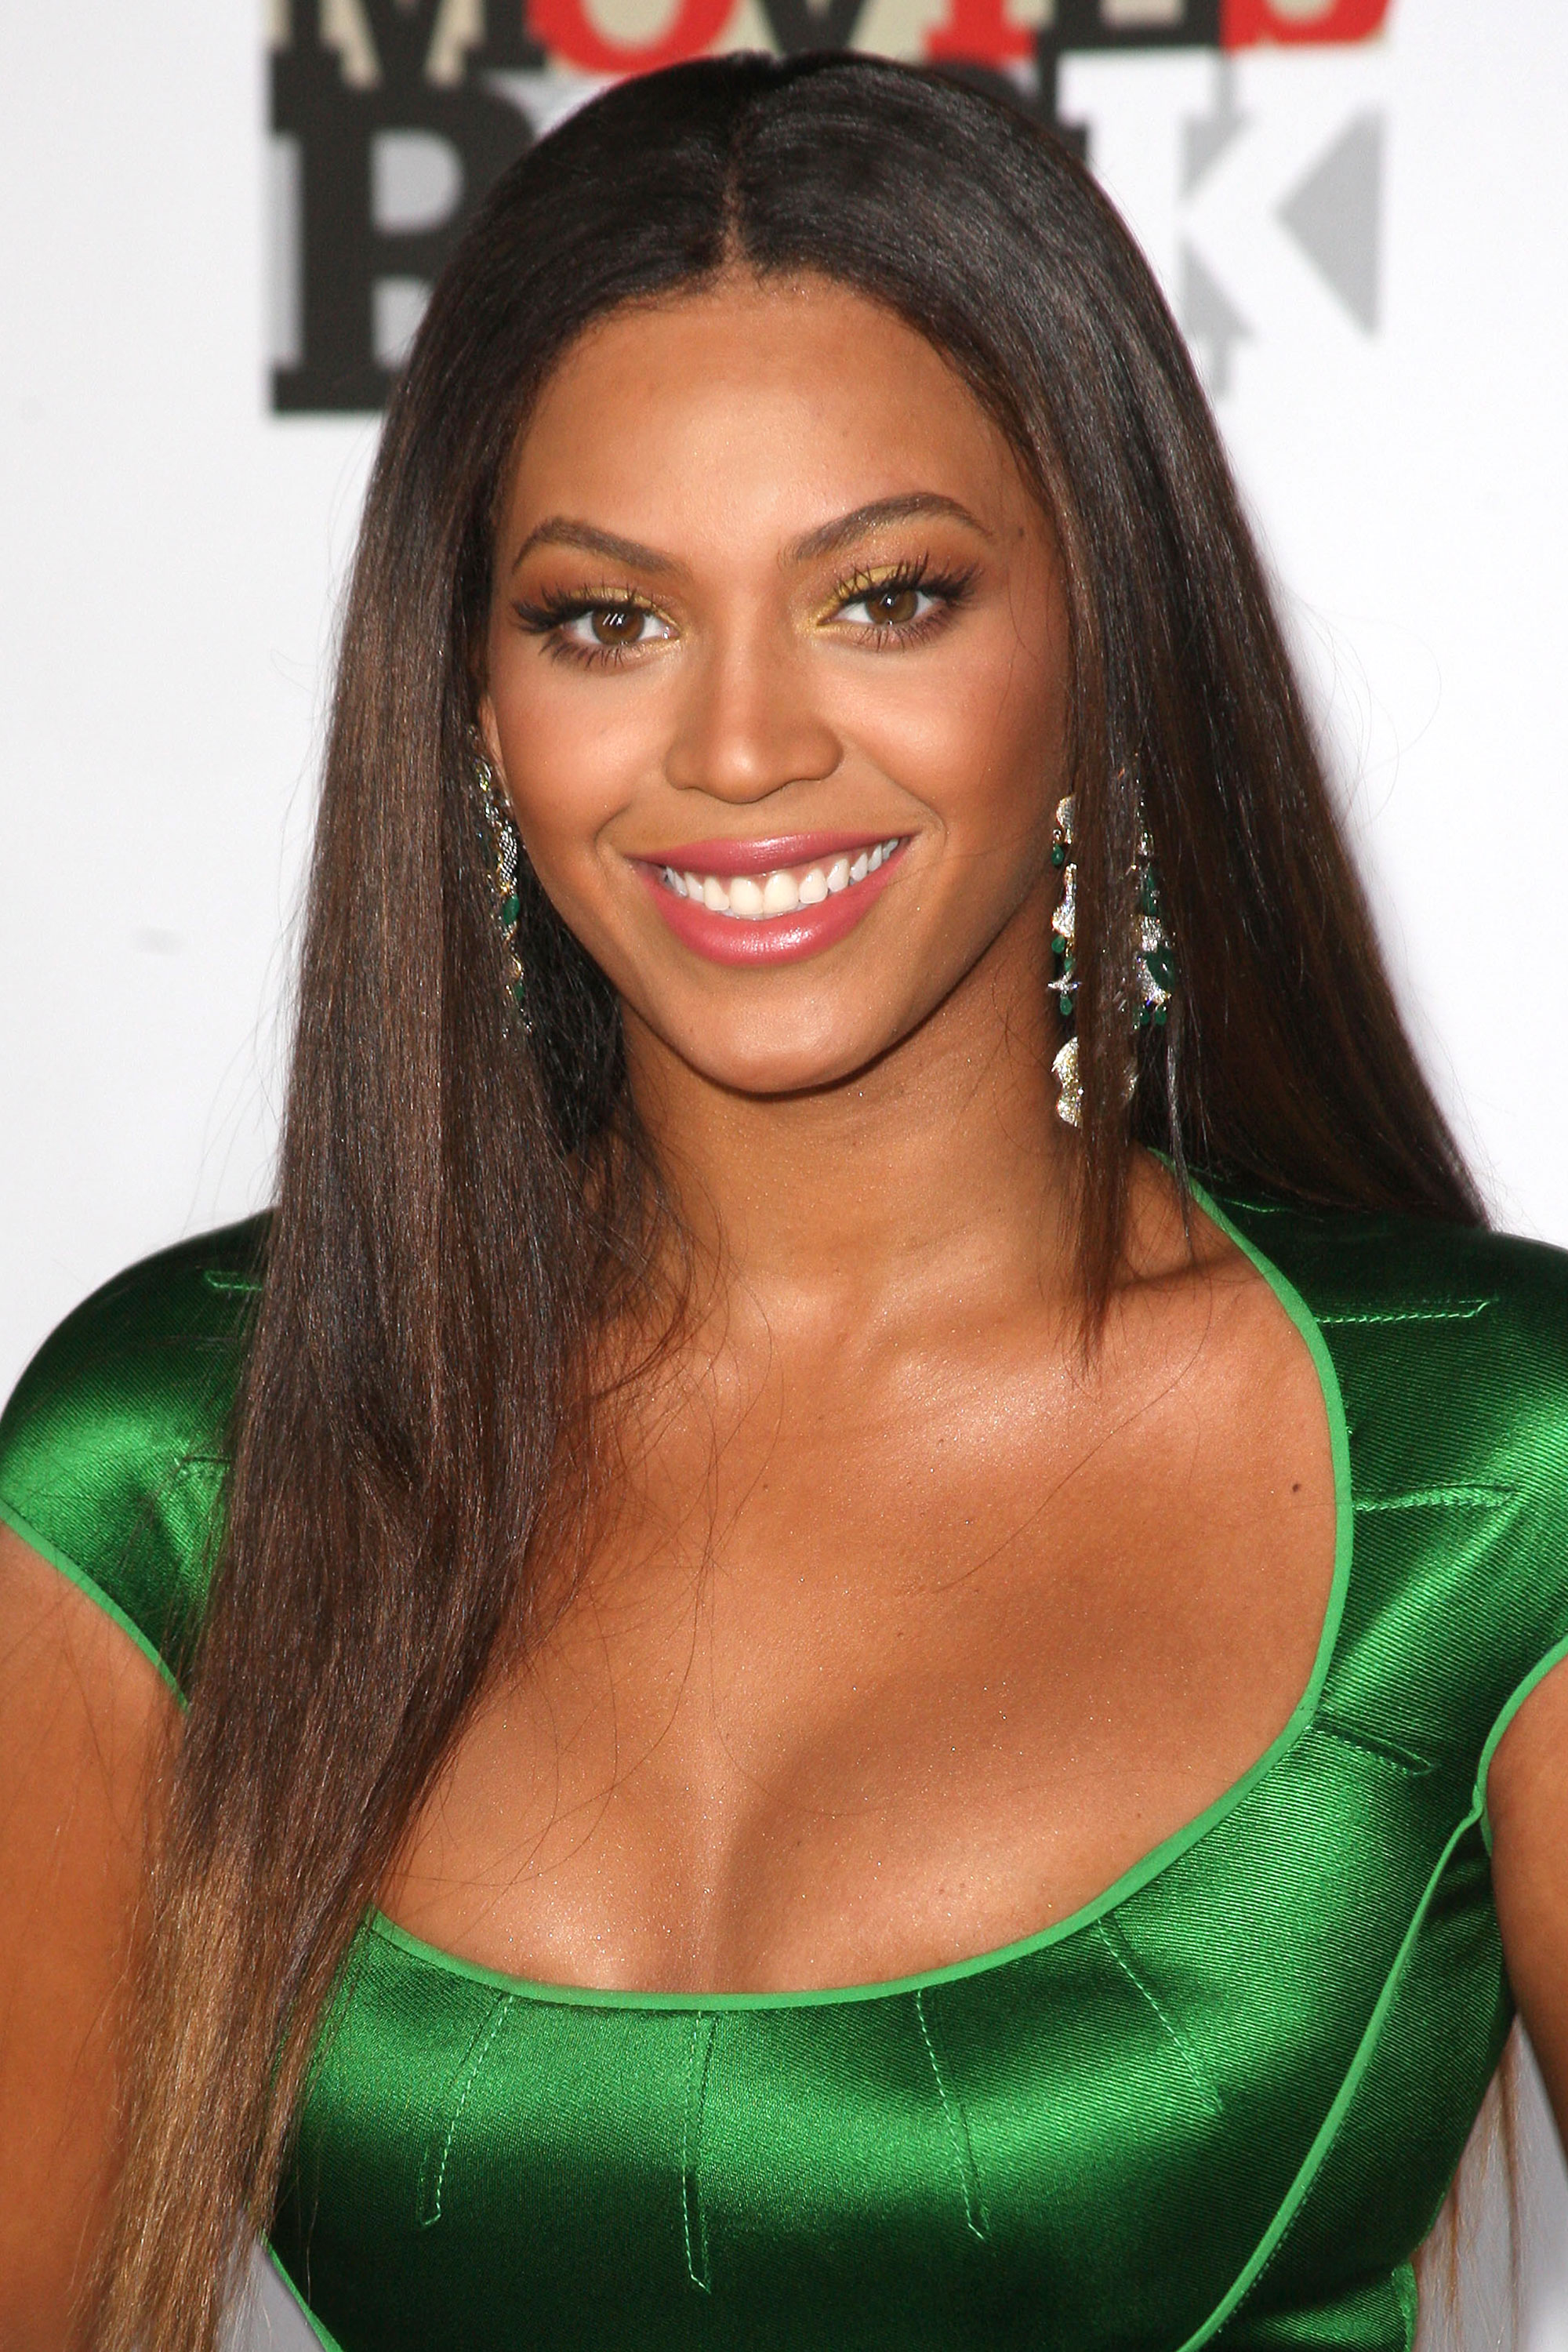 Swell 40 Beyonce Hairstyles Beyonce39S Real Hair Long Hair And Short Short Hairstyles For Black Women Fulllsitofus